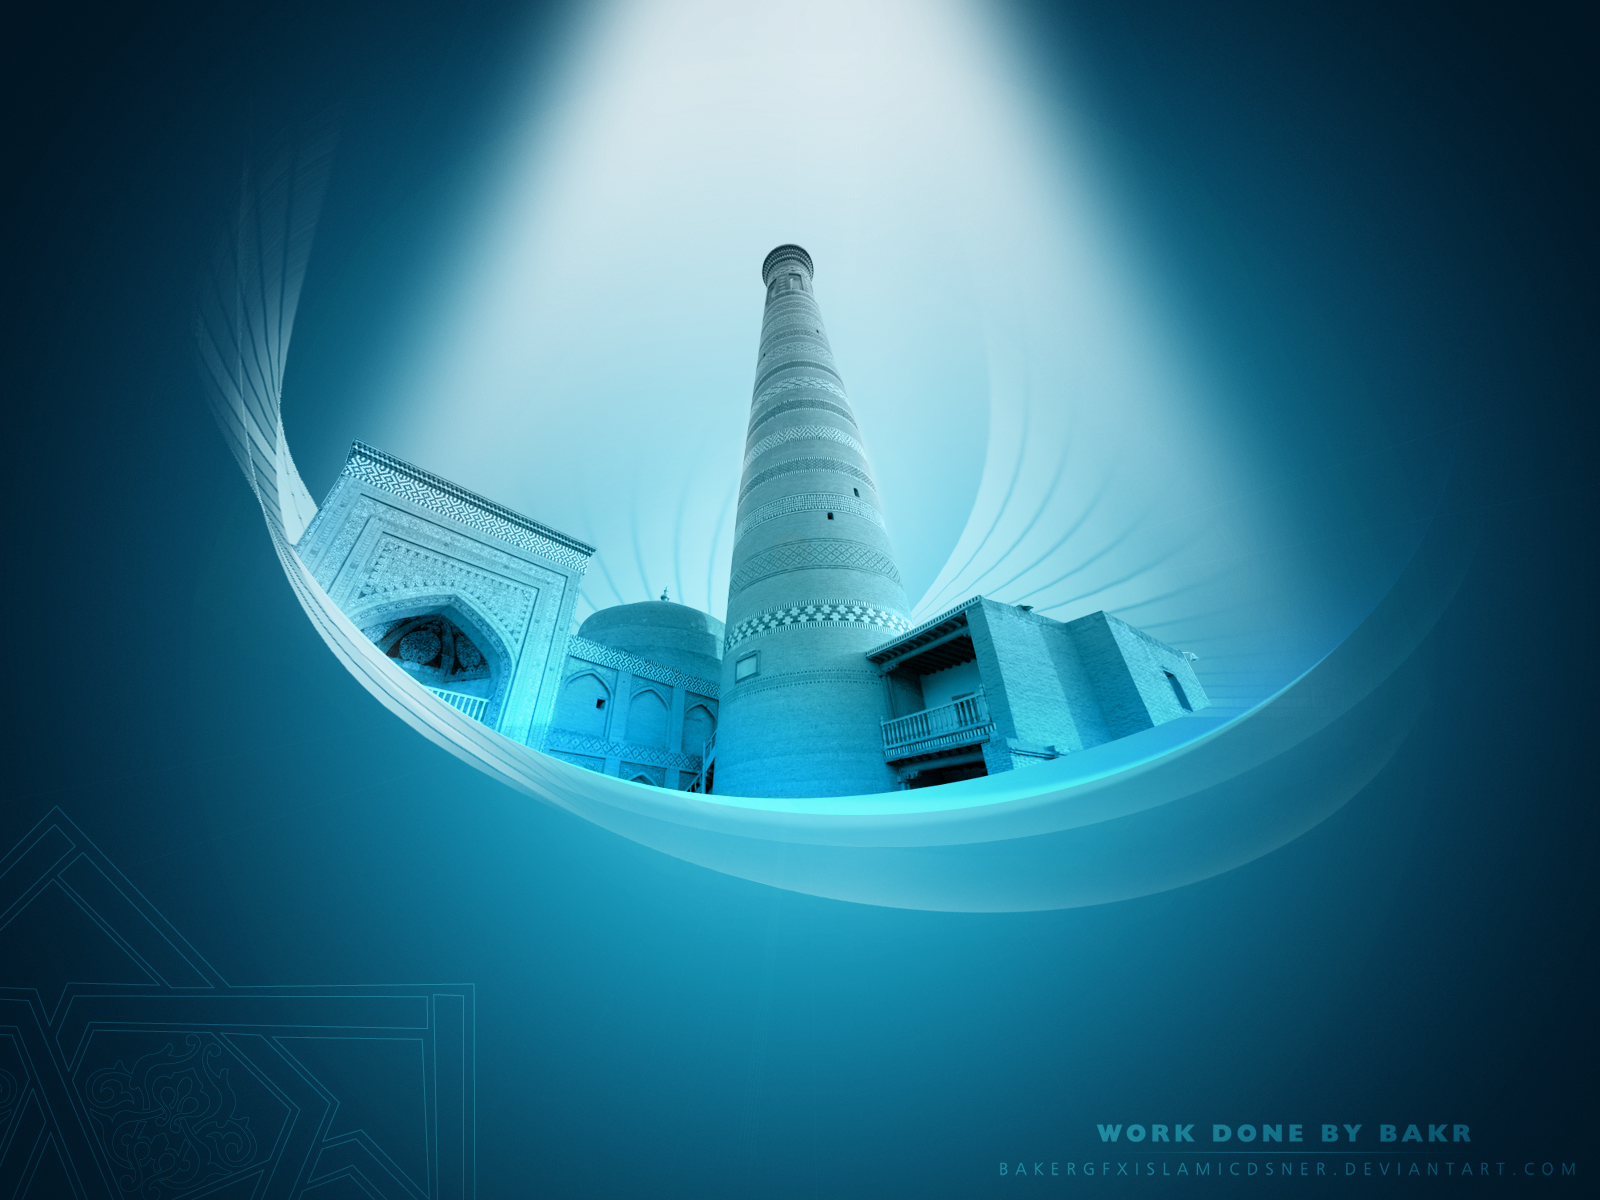 Populair 48+ Muslim HD Wallpapers, For Free Download @UH79